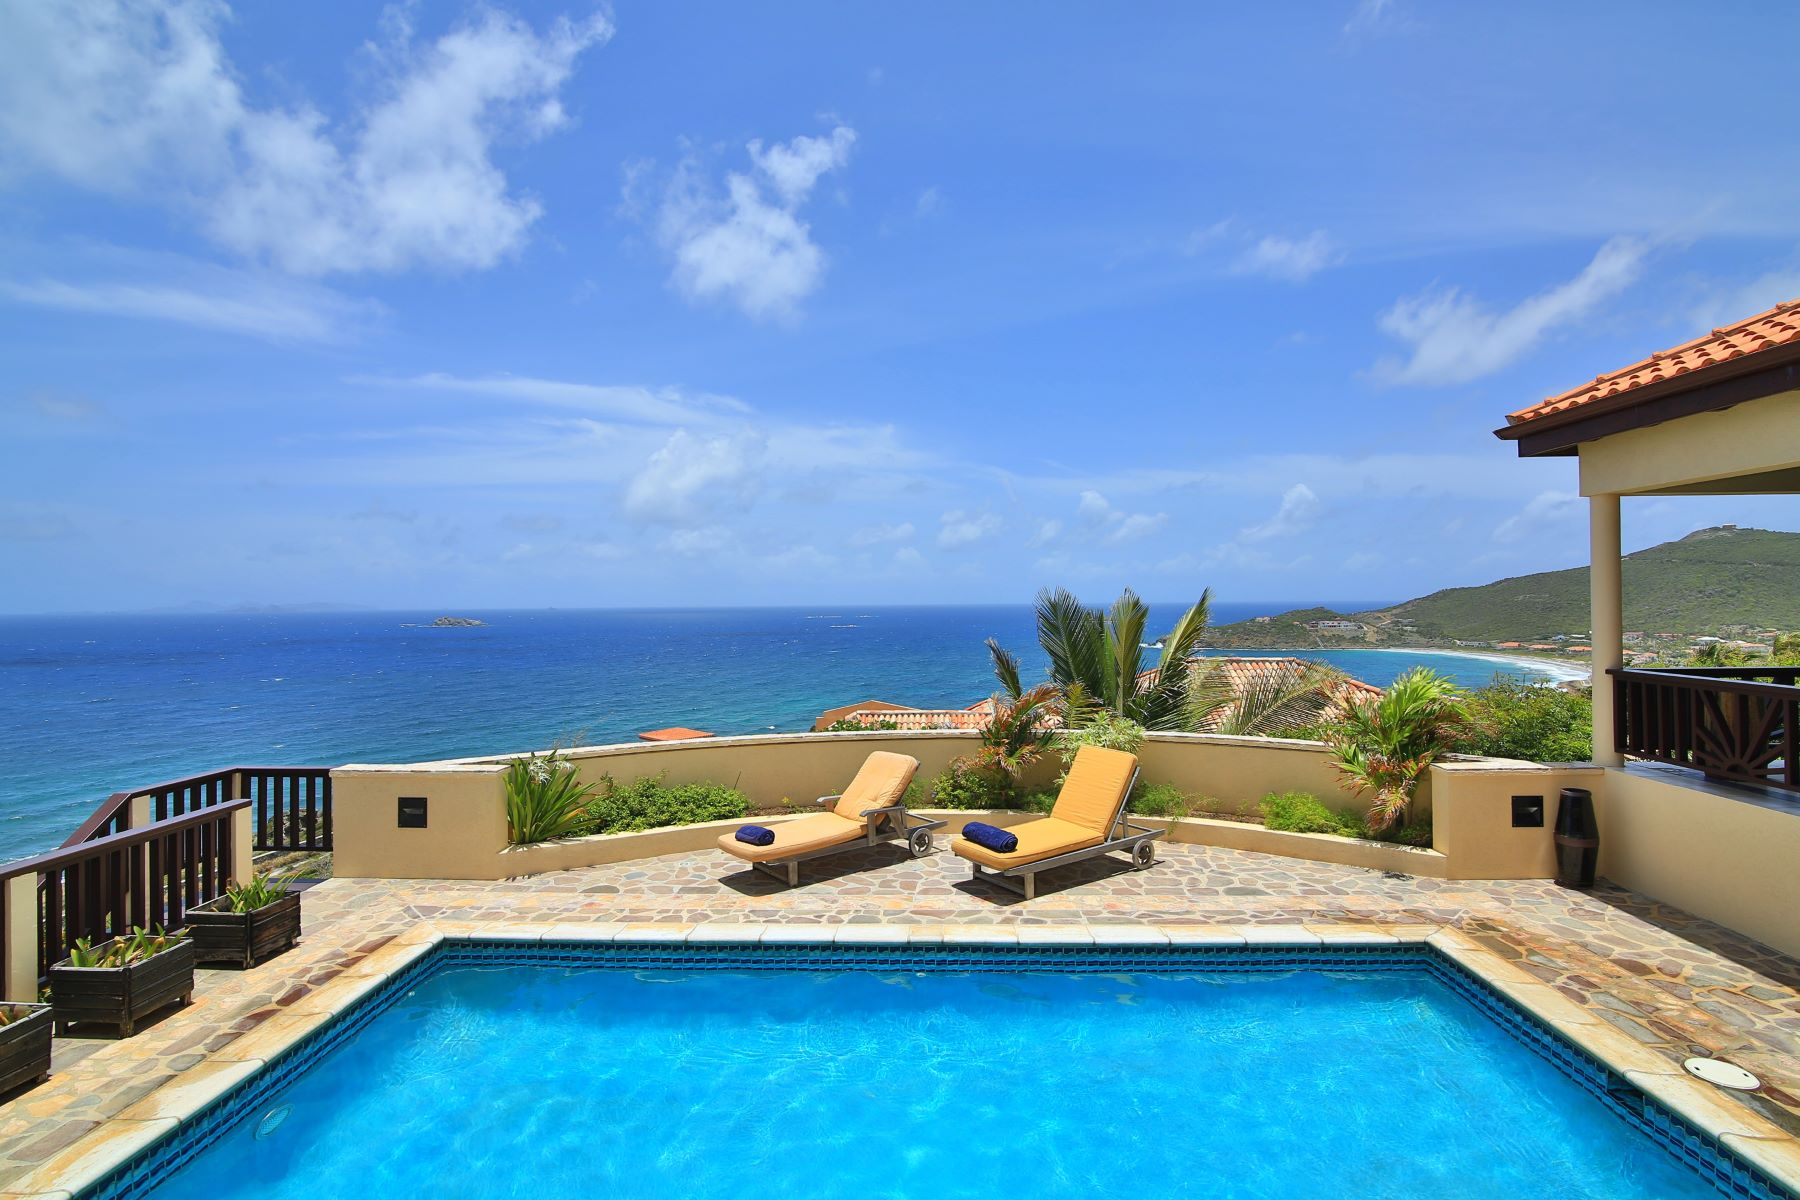 Single Family Home for Sale at Sea Jade Other Cities In Sint Maarten, Cities In Sint Maarten St. Maarten